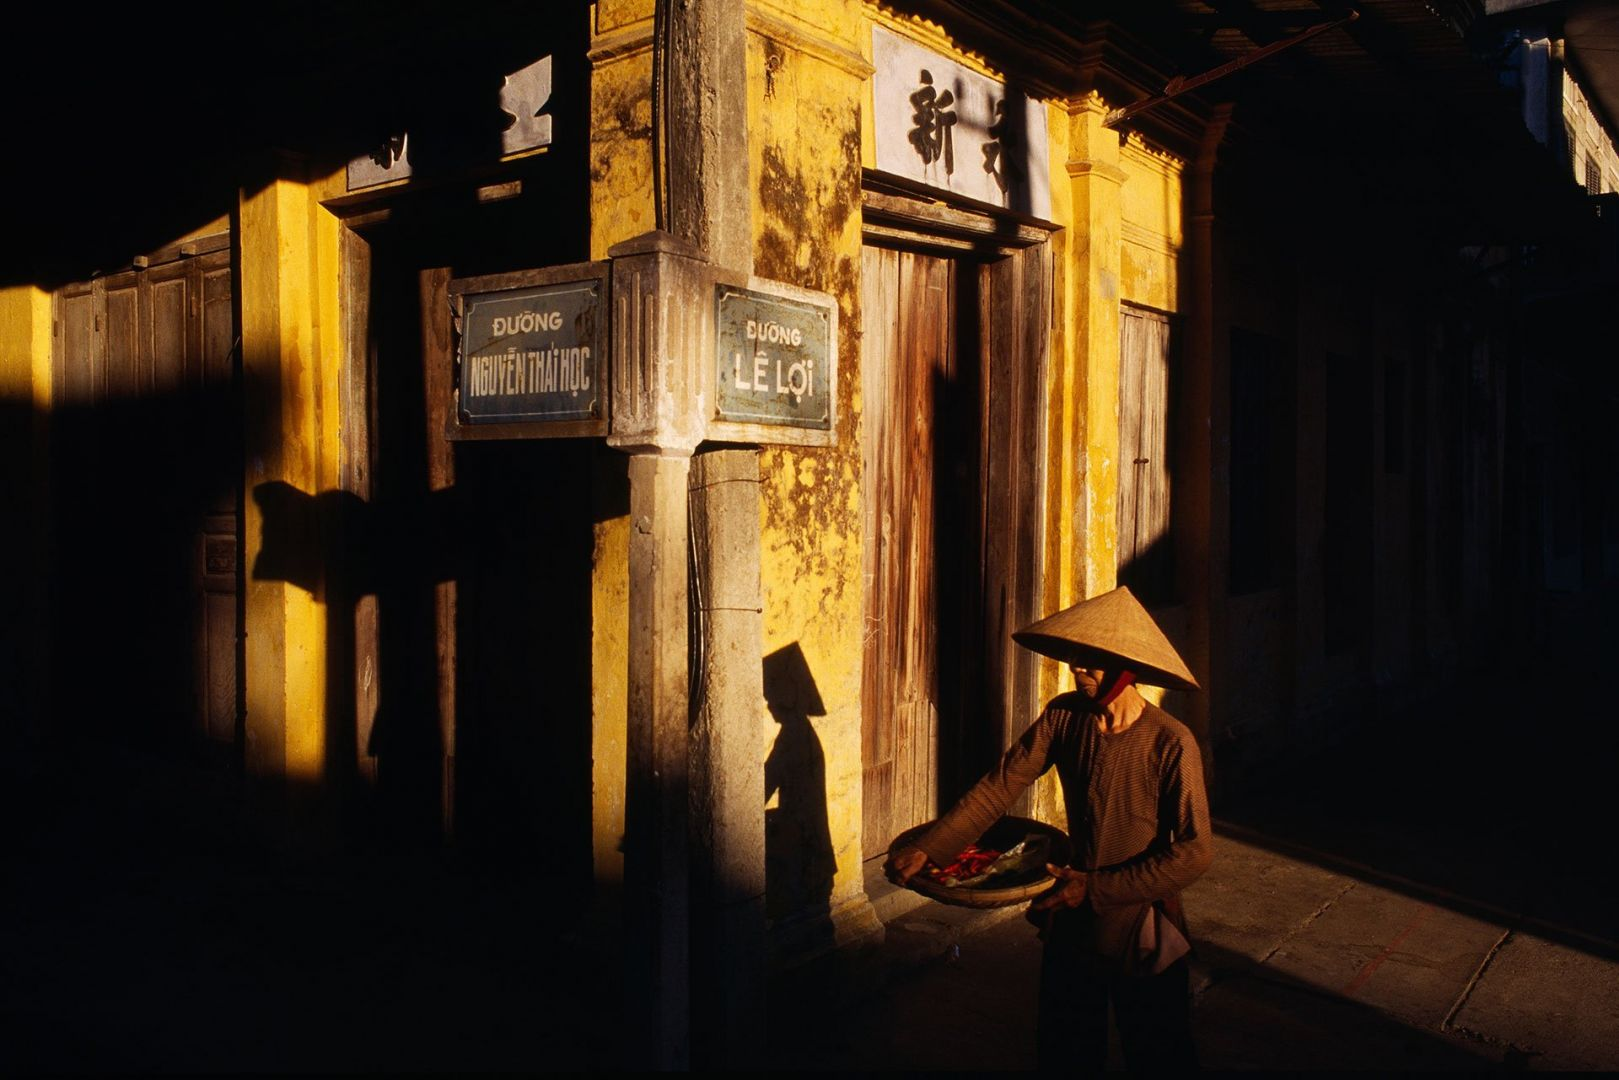 Street corner in Hoi An, Vietnam - Photography by Hans Kemp